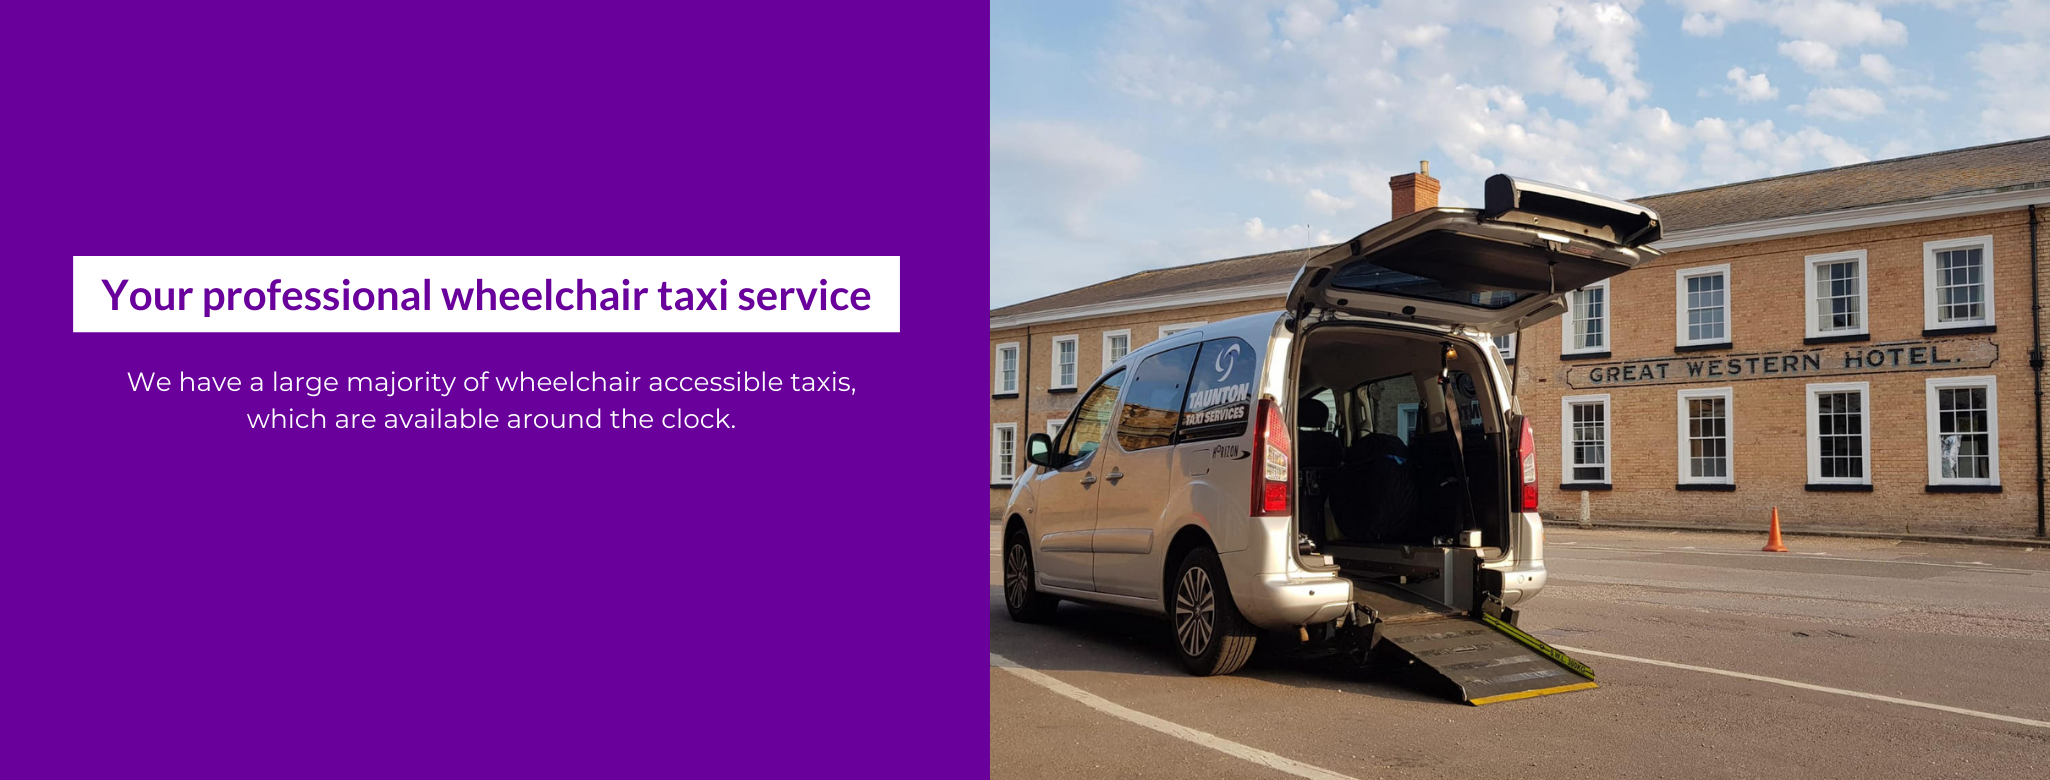 taxis in taunton, wheelchair taxis taunt